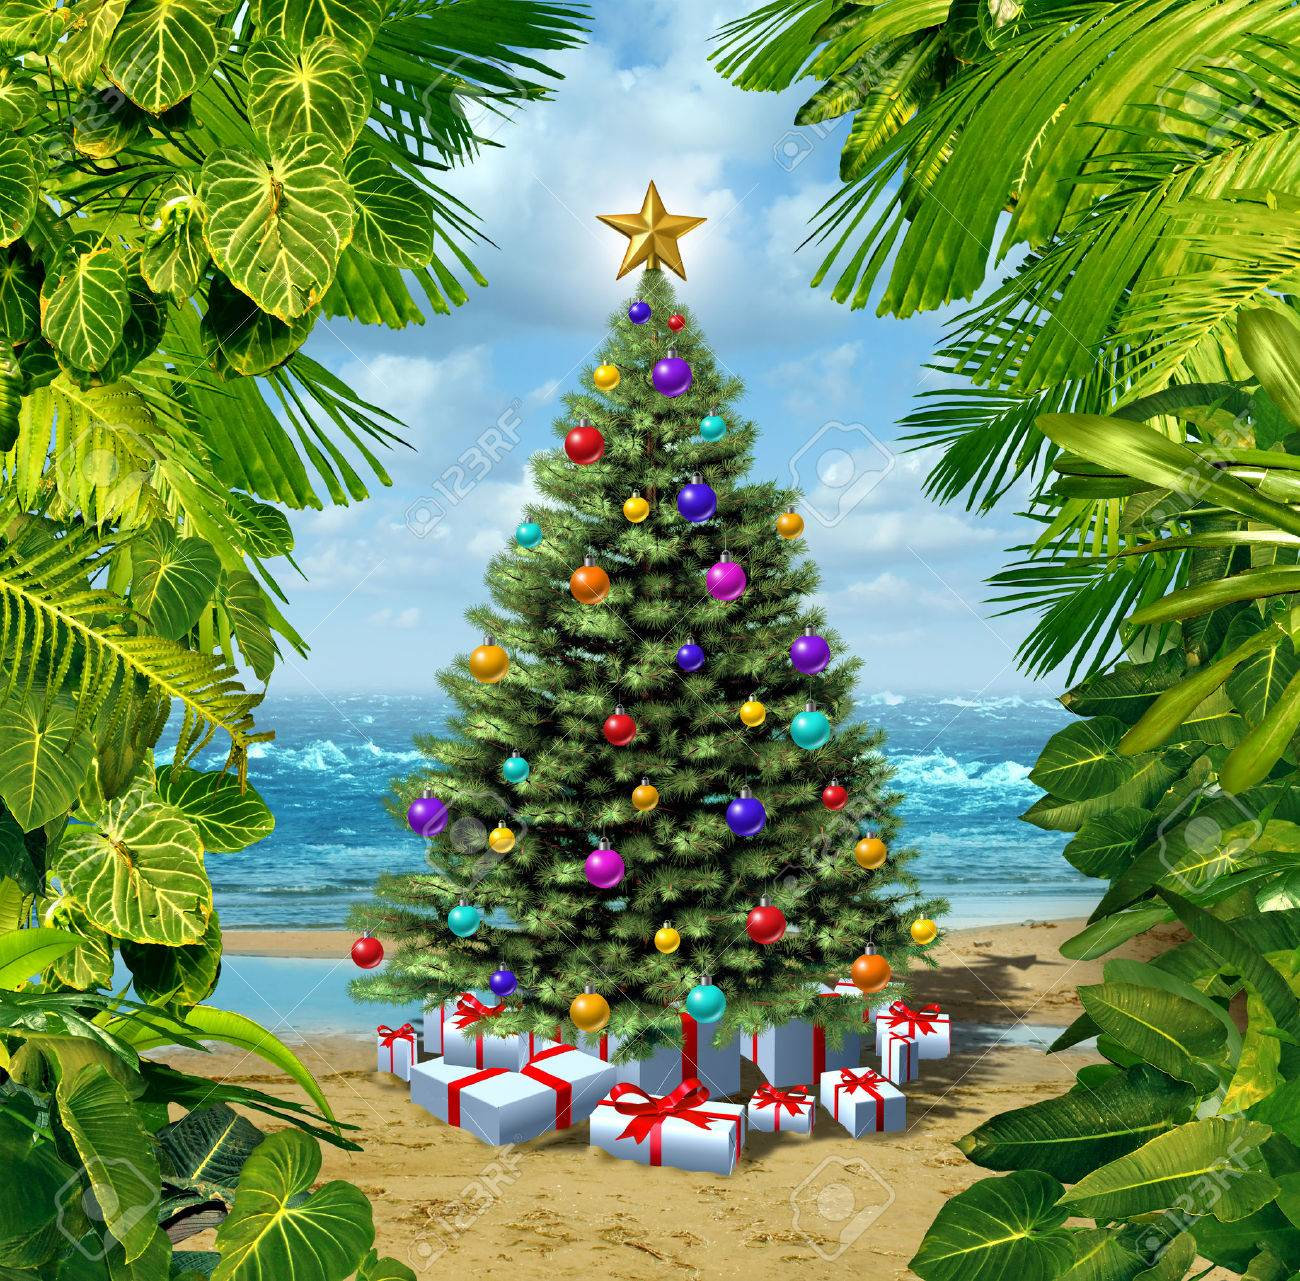 Christmas Tree Beach Celebration On A Tropical Island With Presents